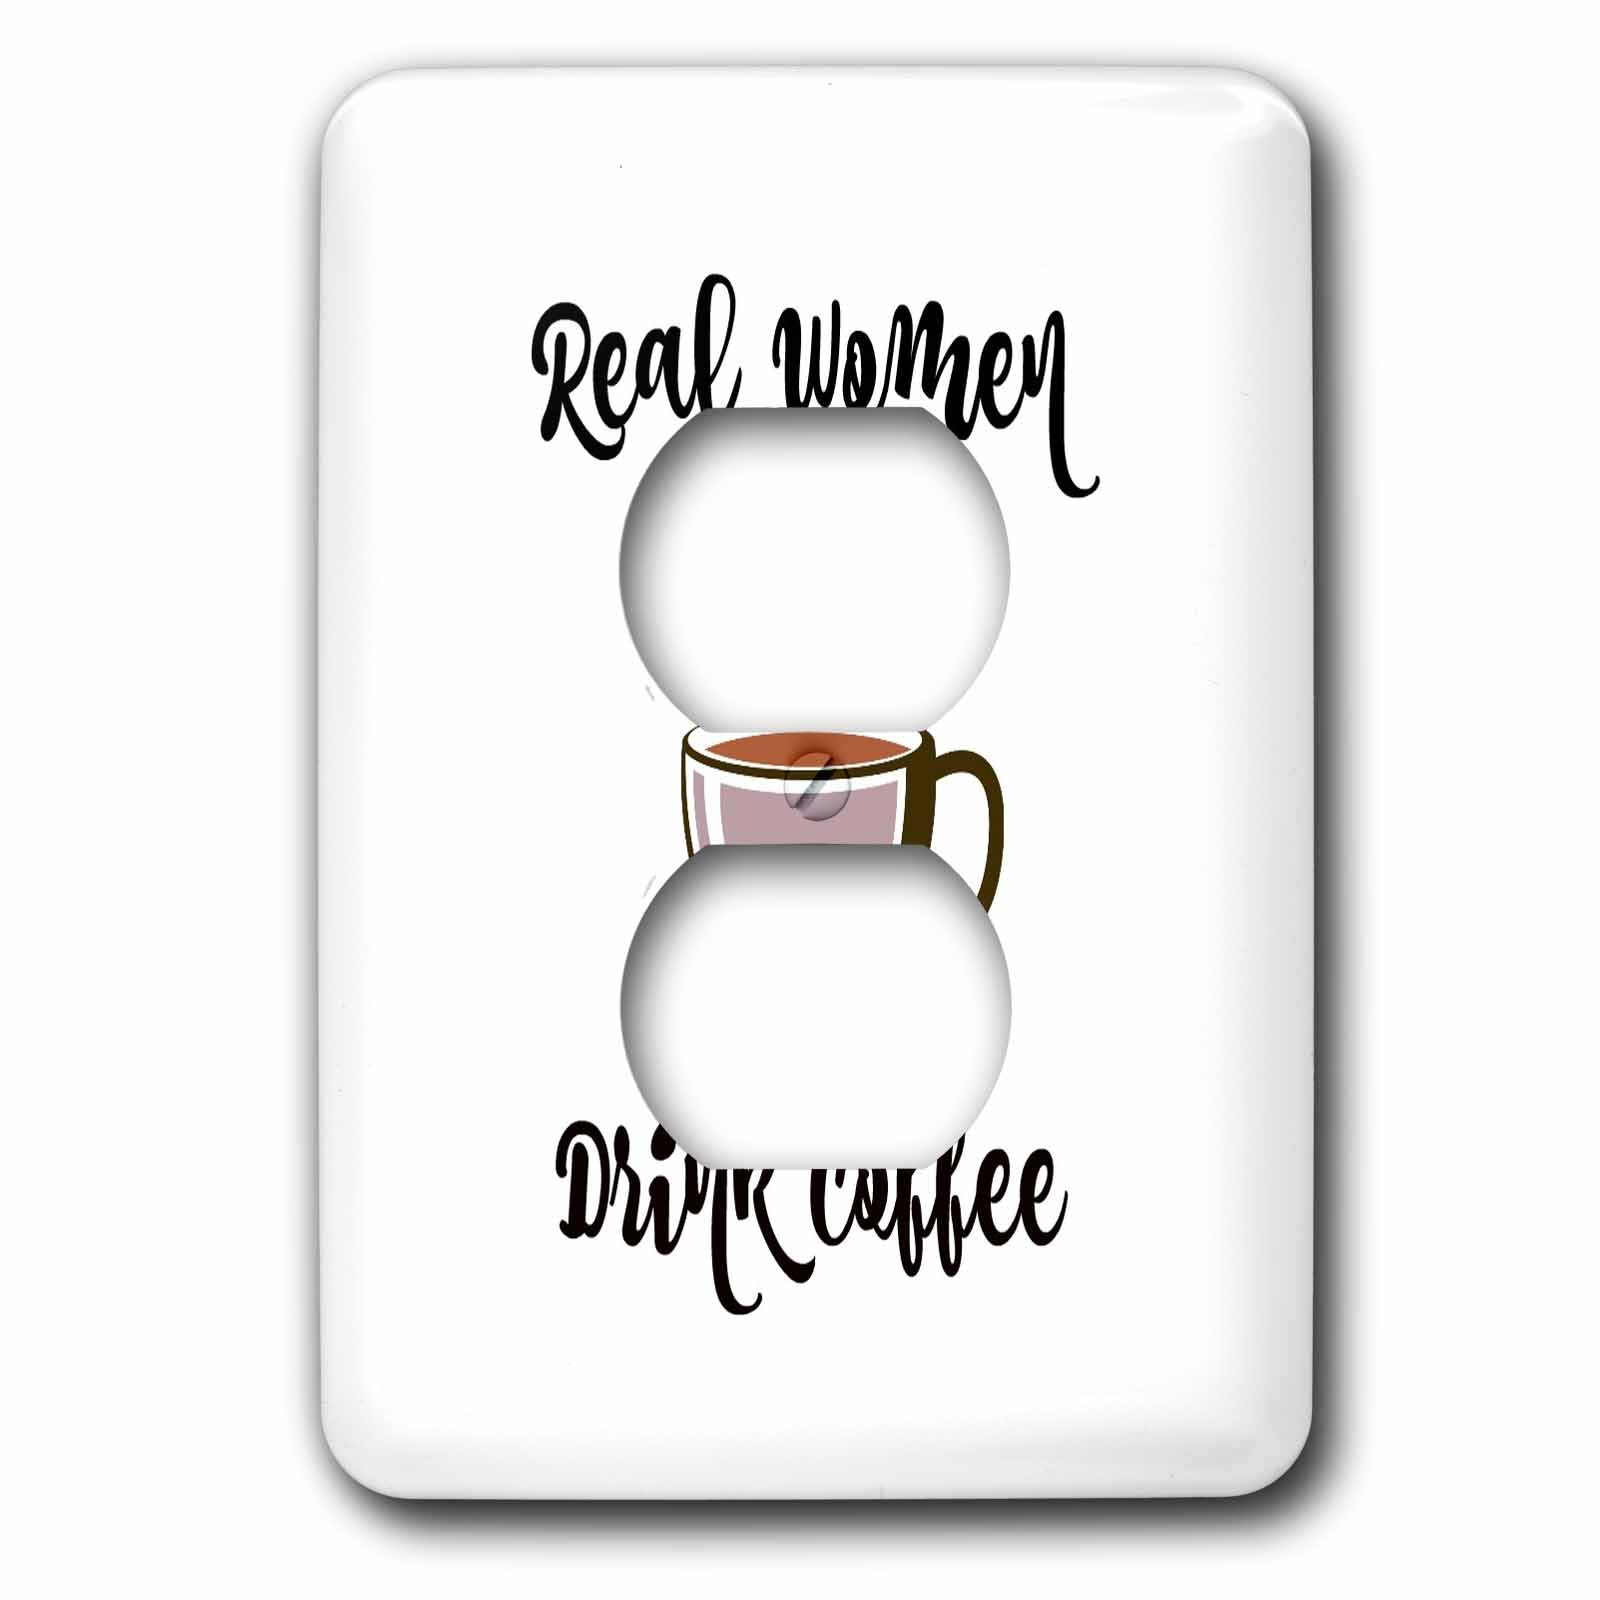 3dRose 3Drose Ally J- Funny Typography - Real Women Drink Coffee, Coffee Mug with Steam - Light Switch Covers - 2 plug outlet cover (lsp_286263_6)